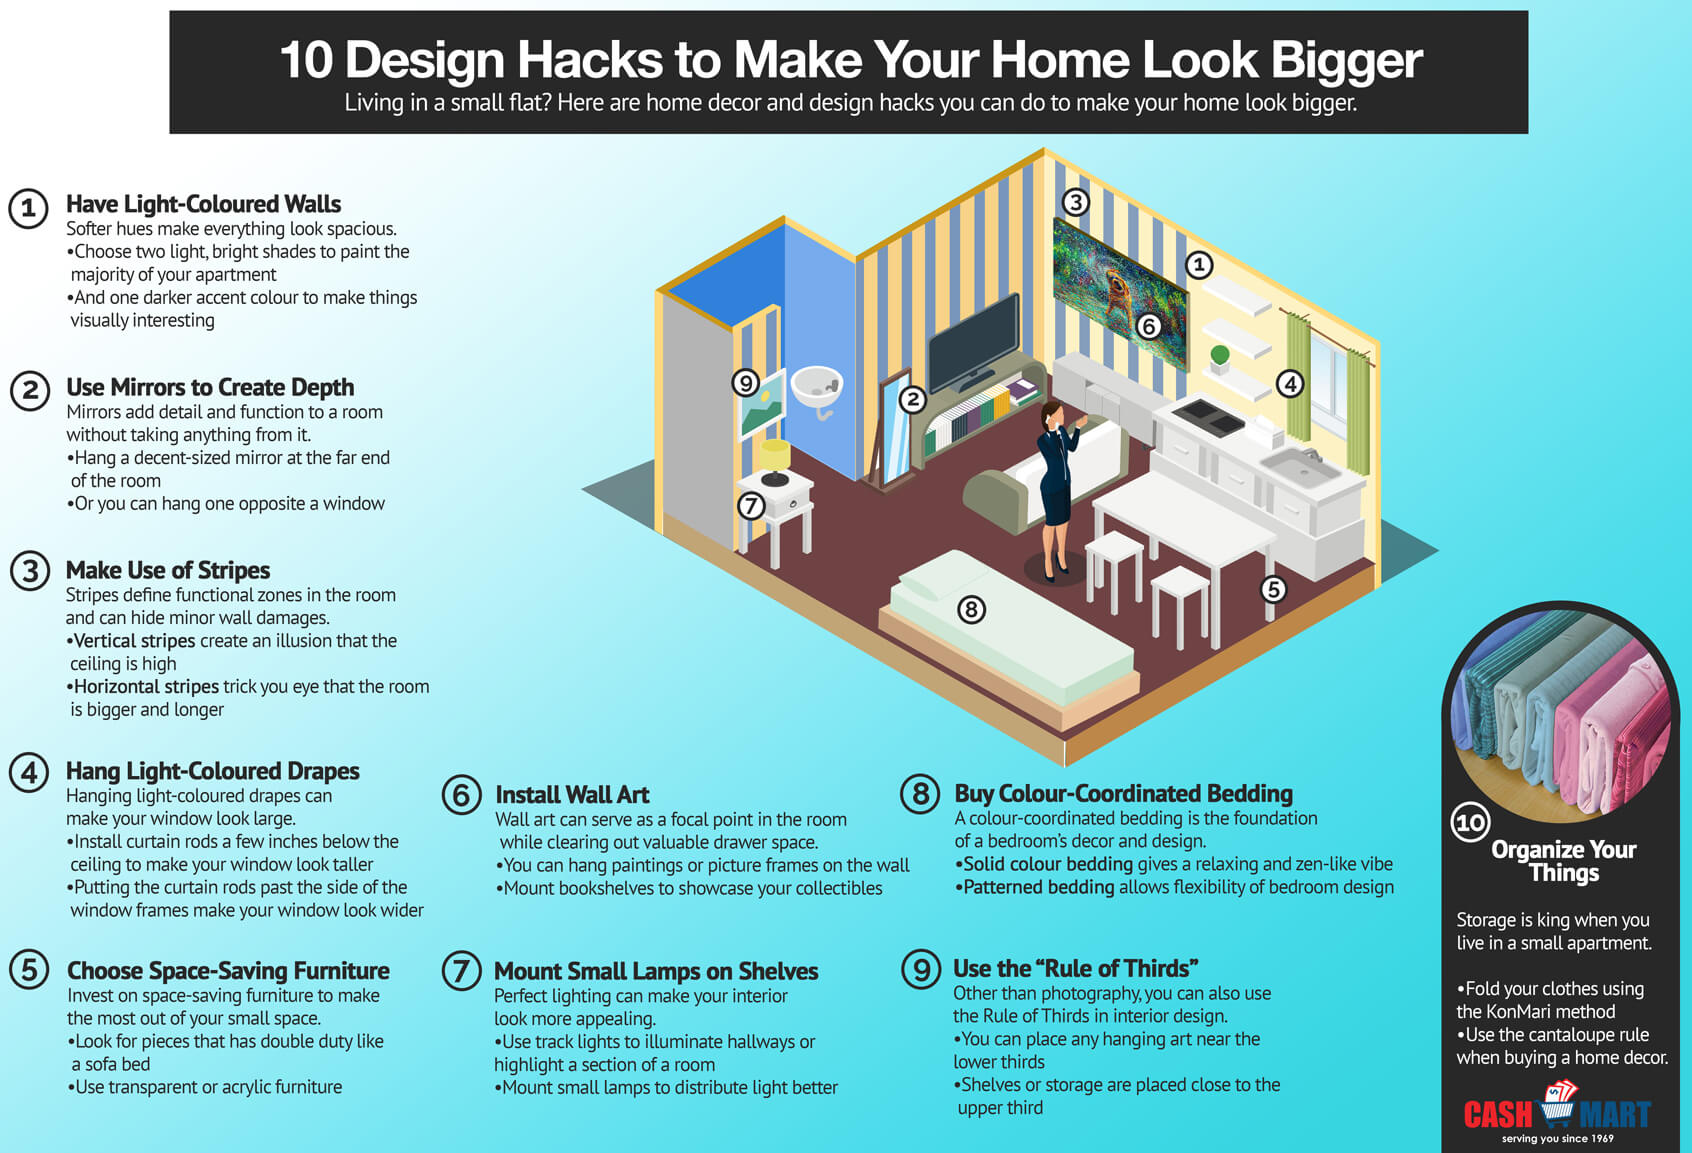 Small-Condo-Hacks-infographic-plaza